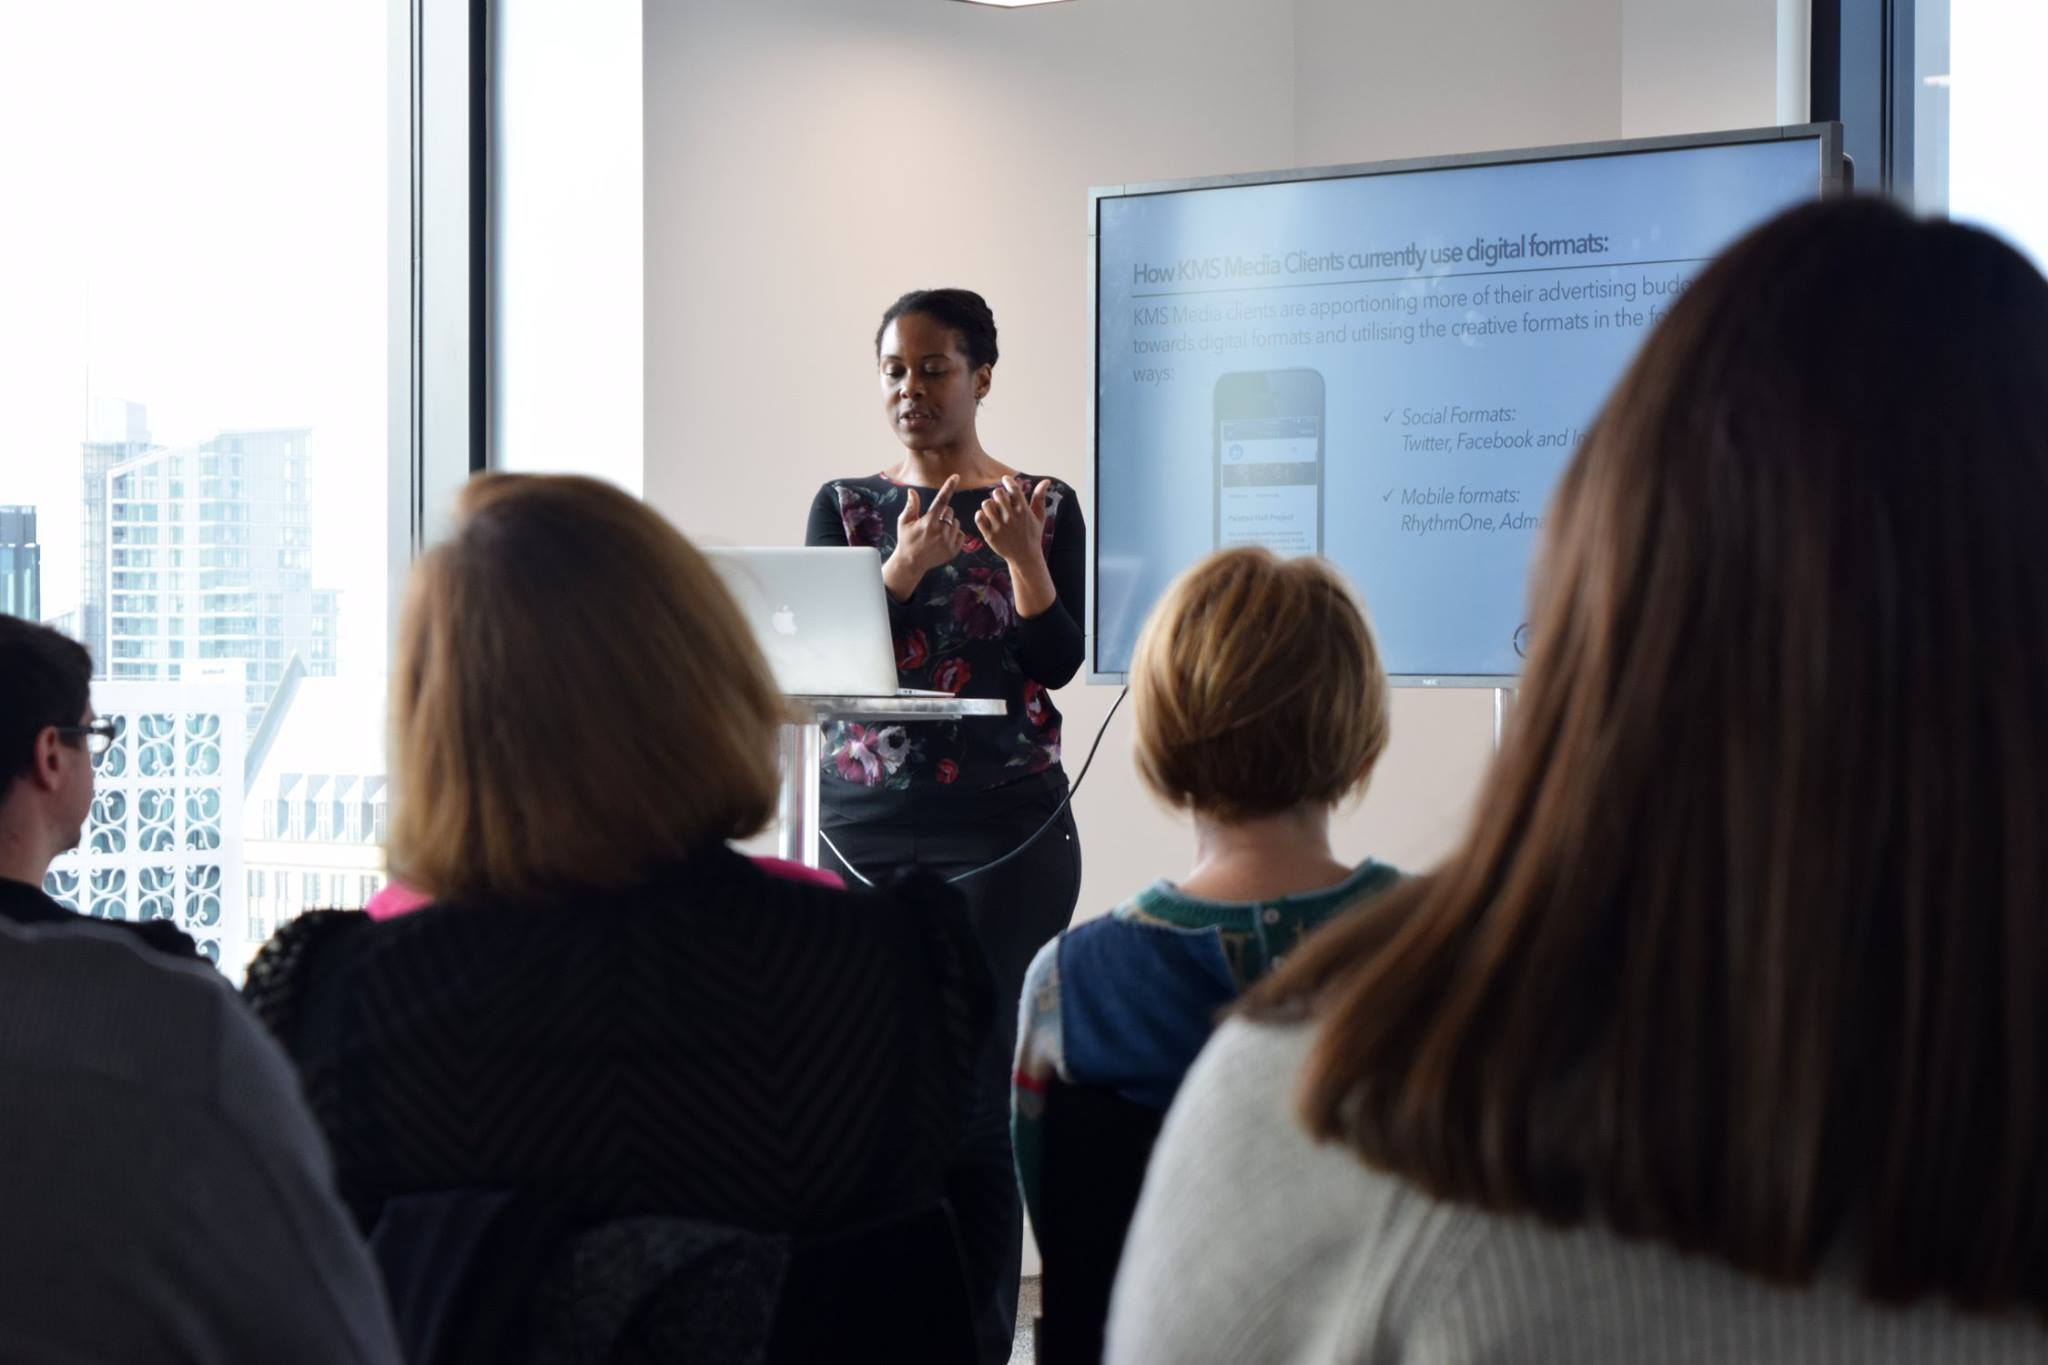 We held a 'lunch and learn' event to educate our clients on the benefits of digital advertising, more specifically RhythmOne